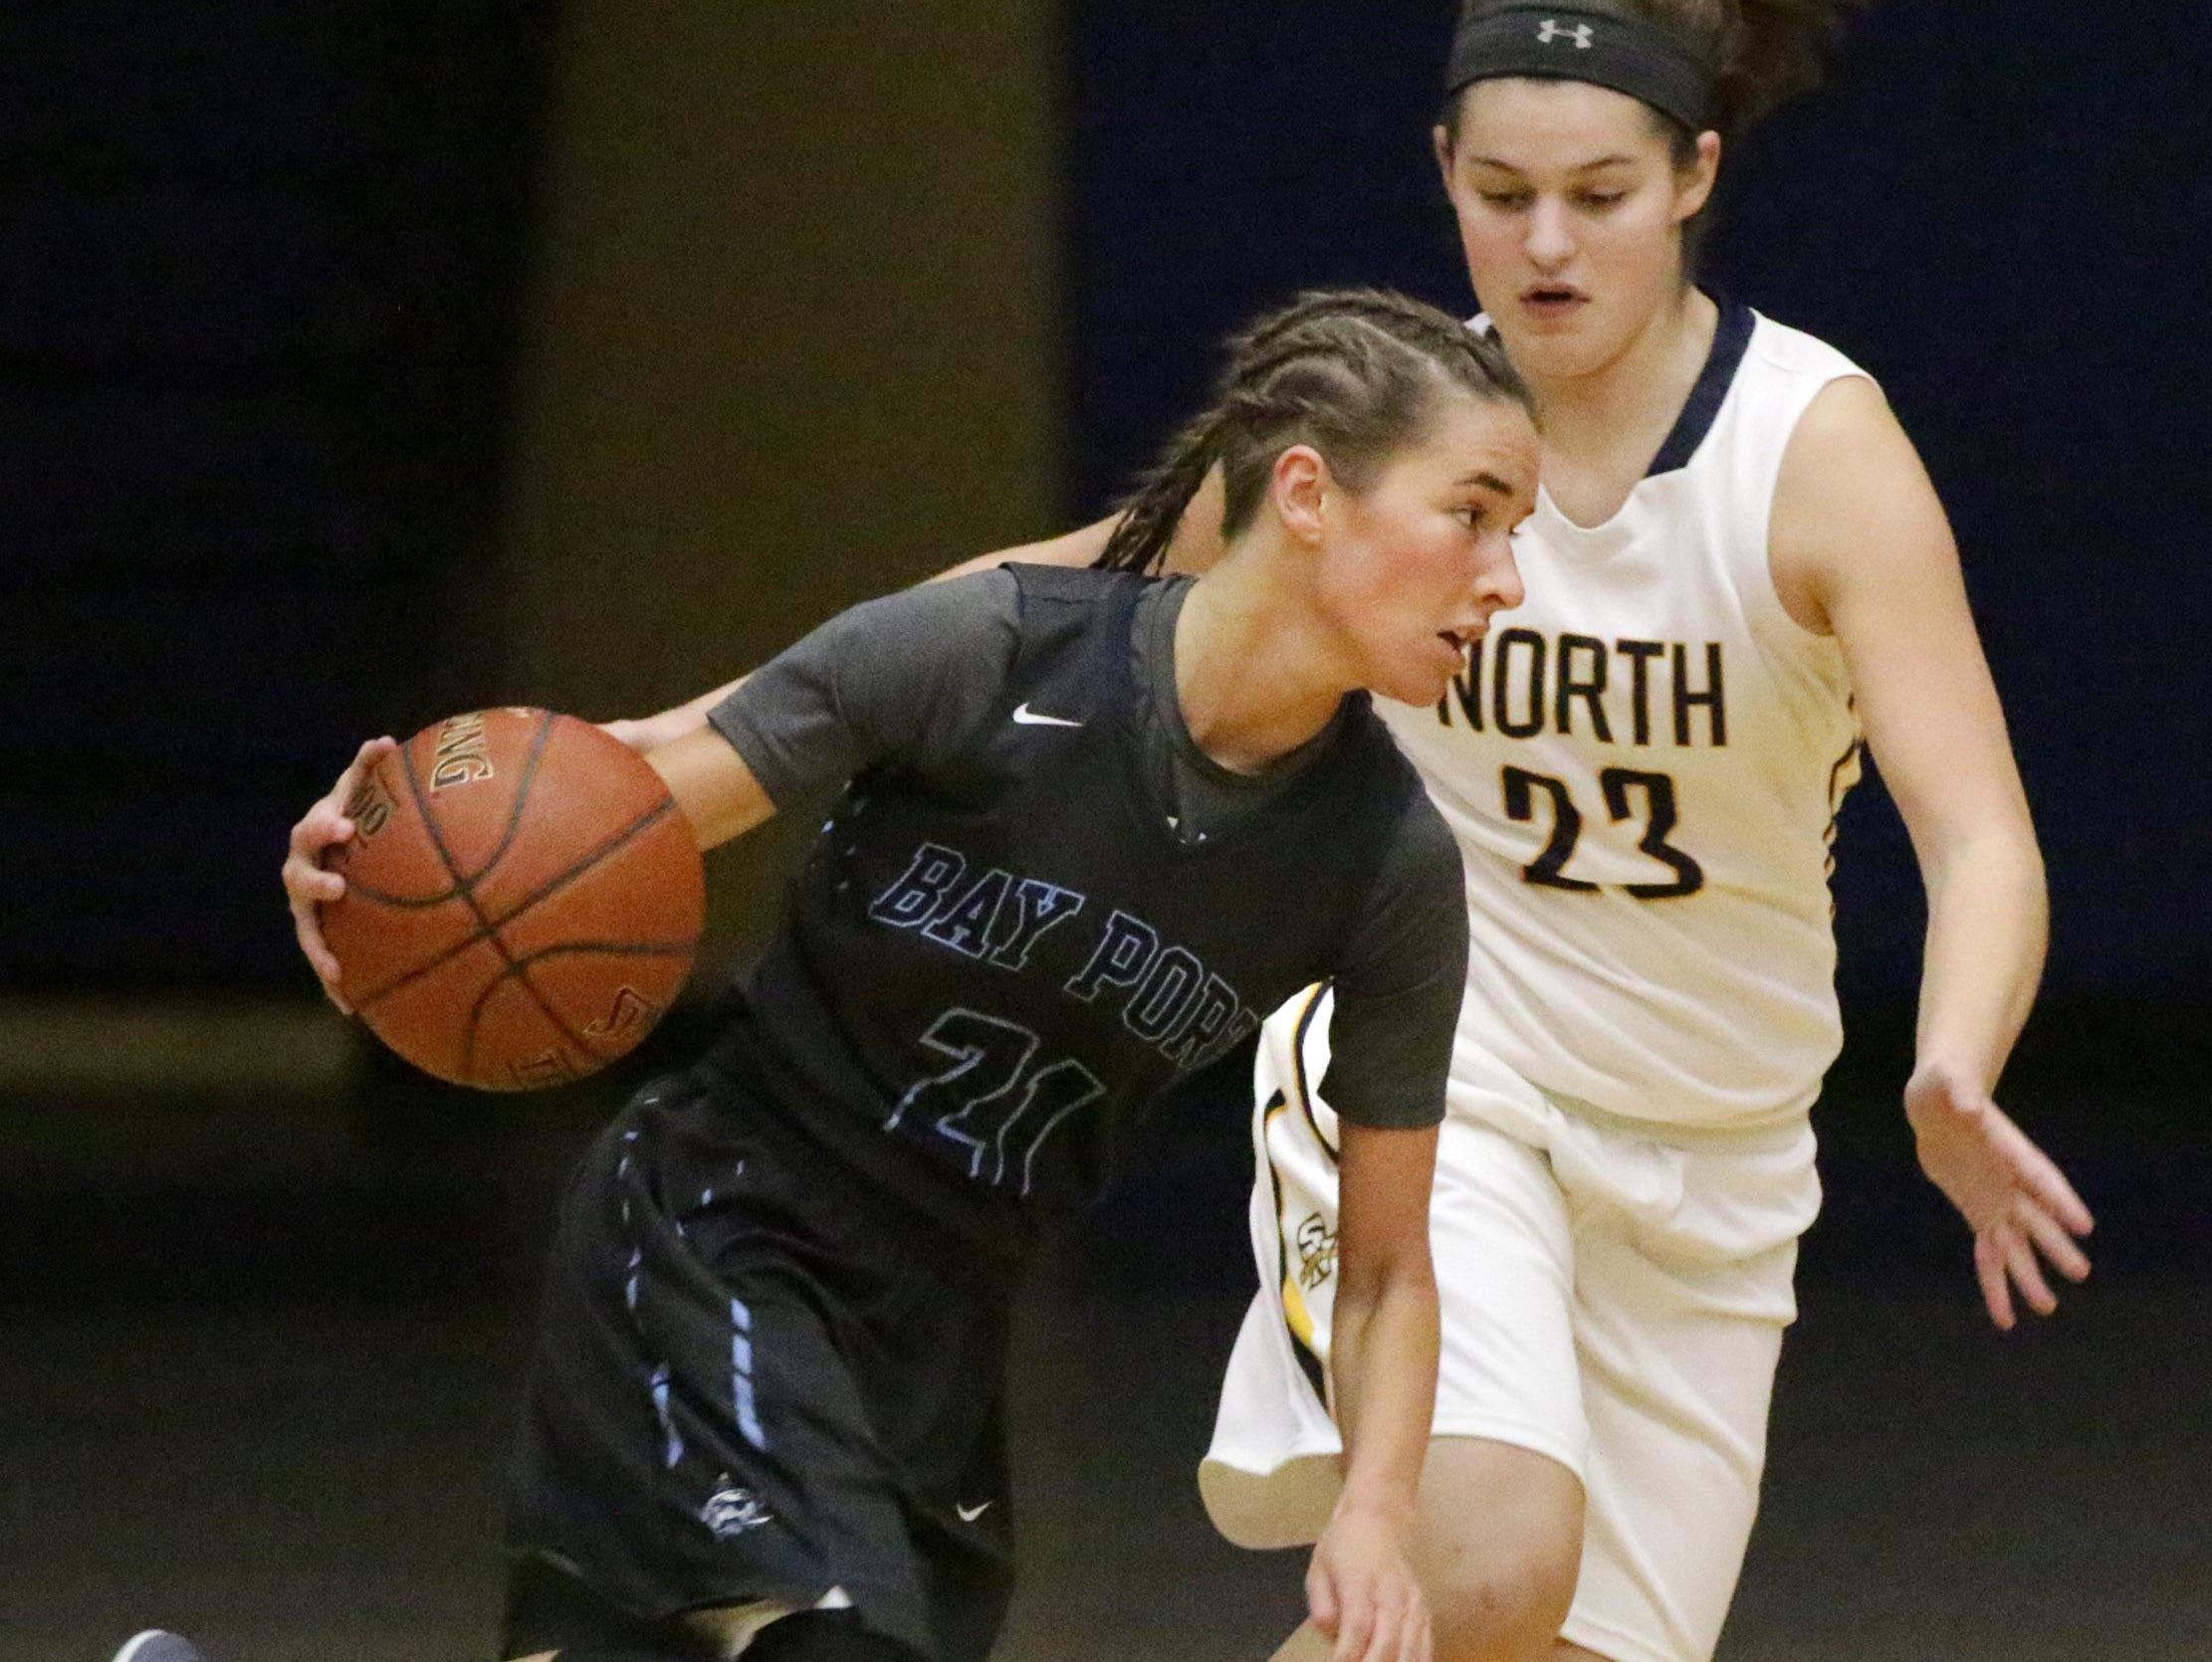 Bay Port's Meg Knutson (21) drives the ball by Sheboygan North's Meridith Opie (23) in a FRCC girls basketball game Friday at North.